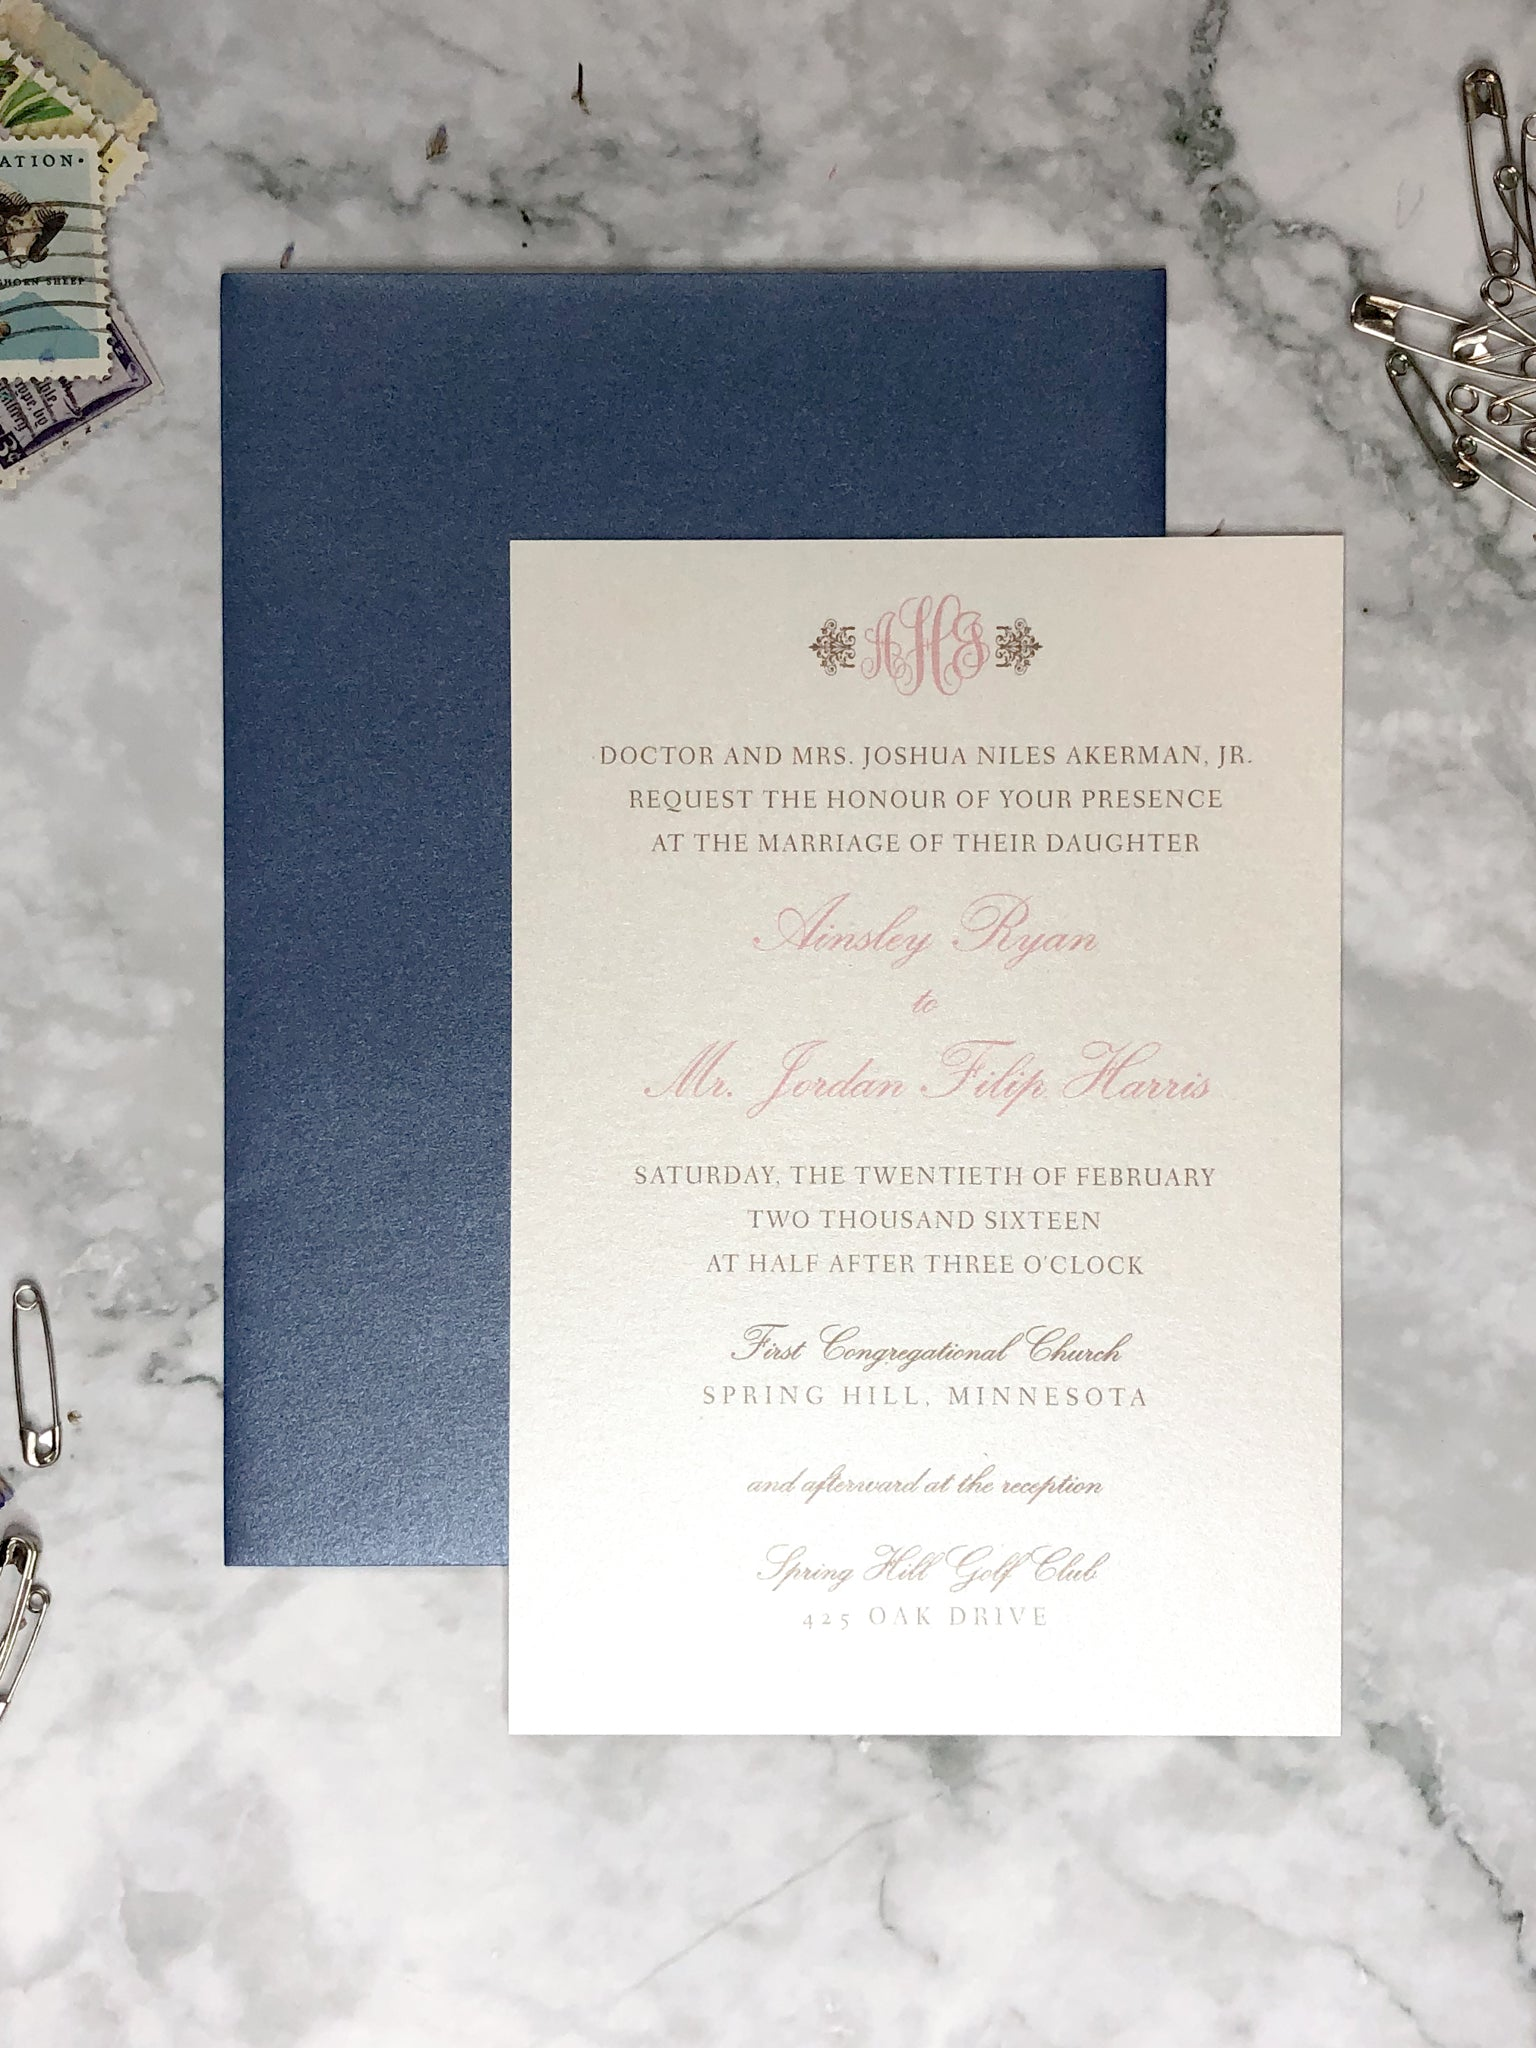 Ainsley Wedding Invitations |  Simple Monogrammed Damask Invites - Lindsay Ann Artistry